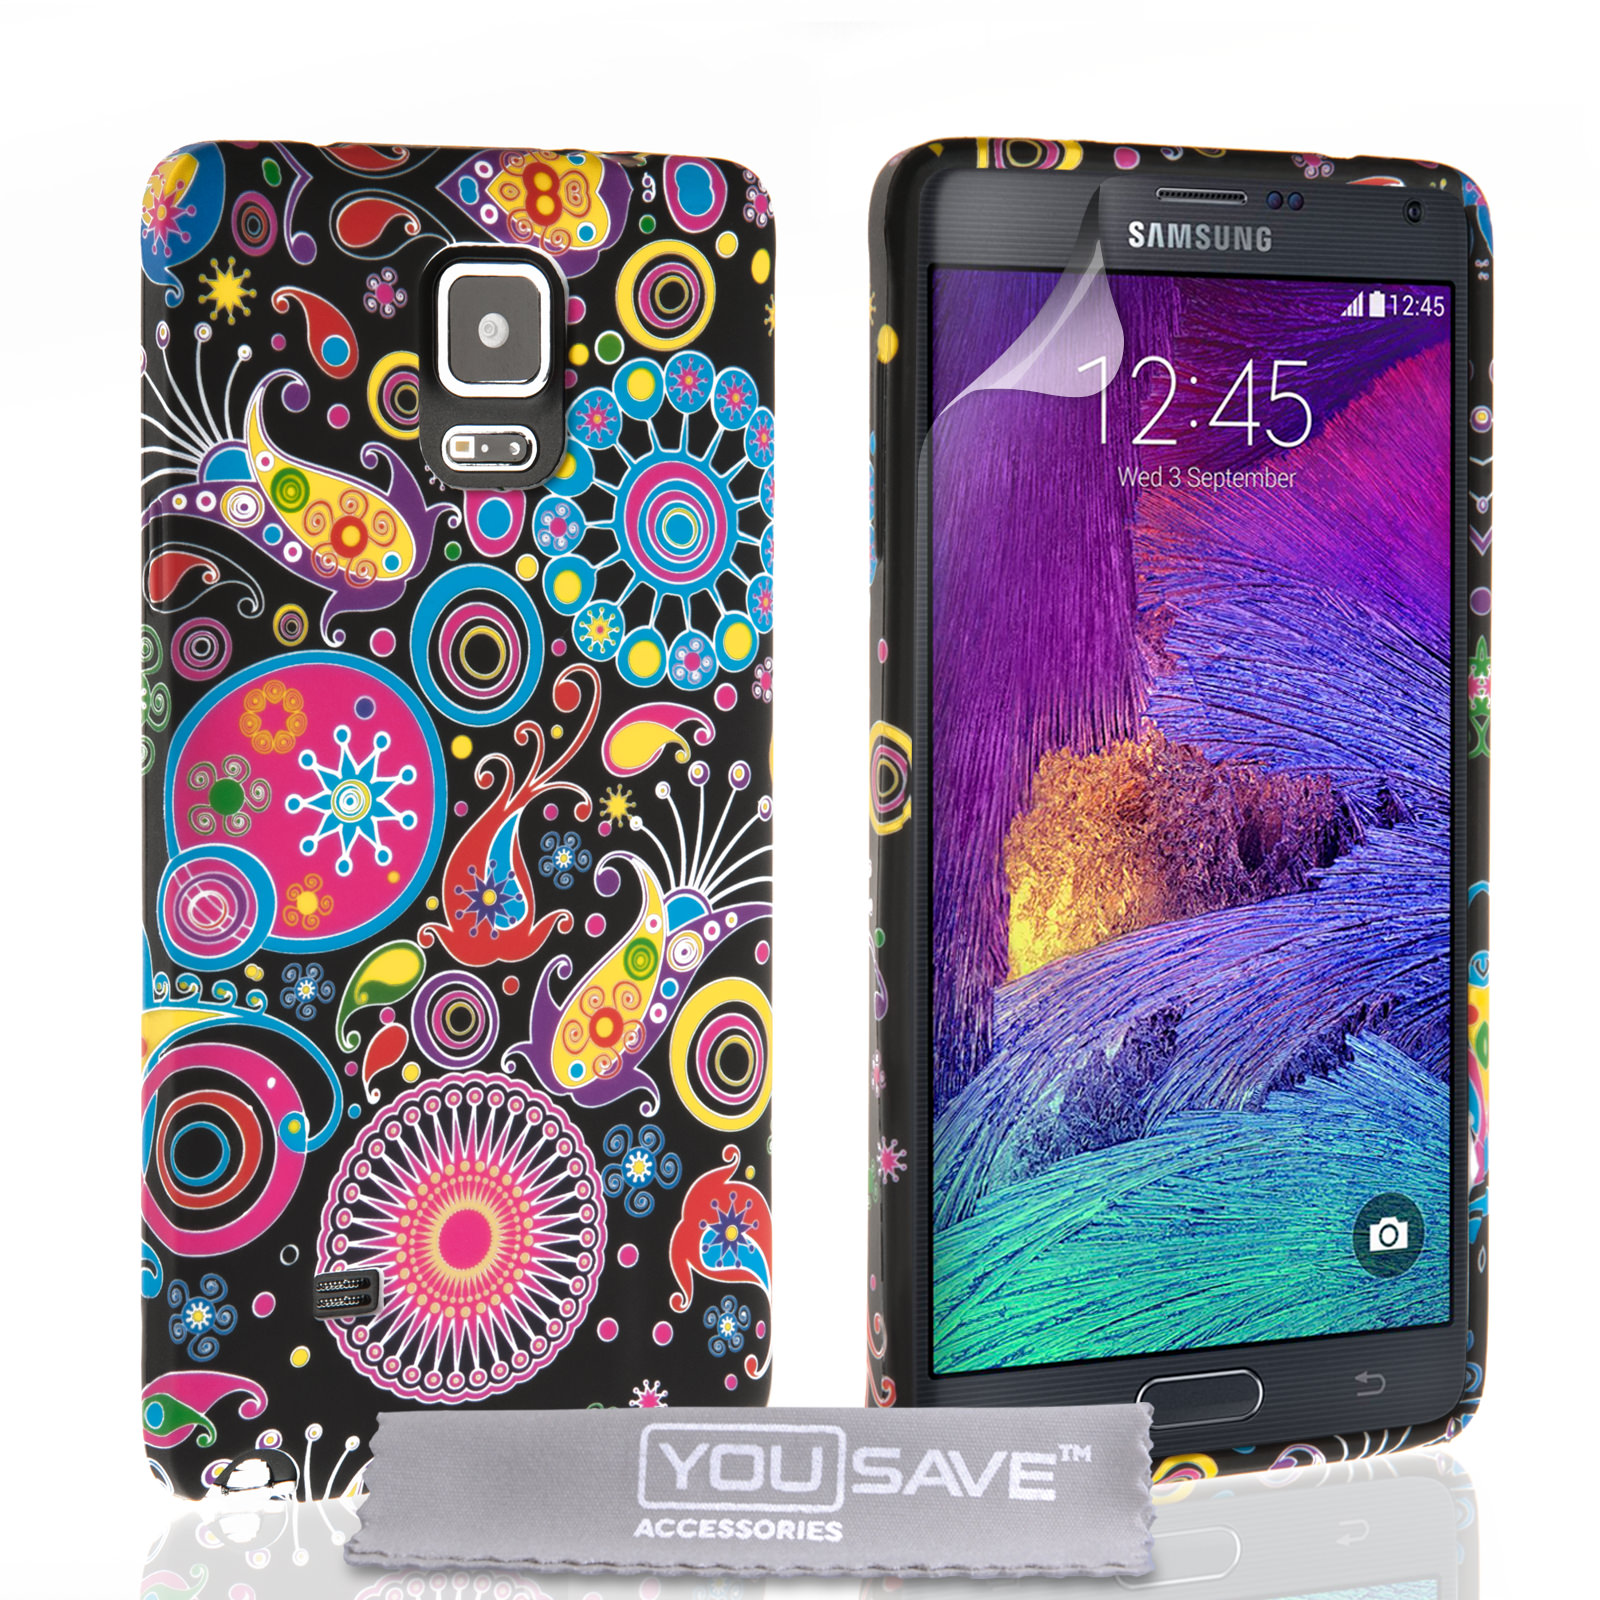 YouSave Accessories Samsung Galaxy Note 4 Jellyfish Silicone Gel Case